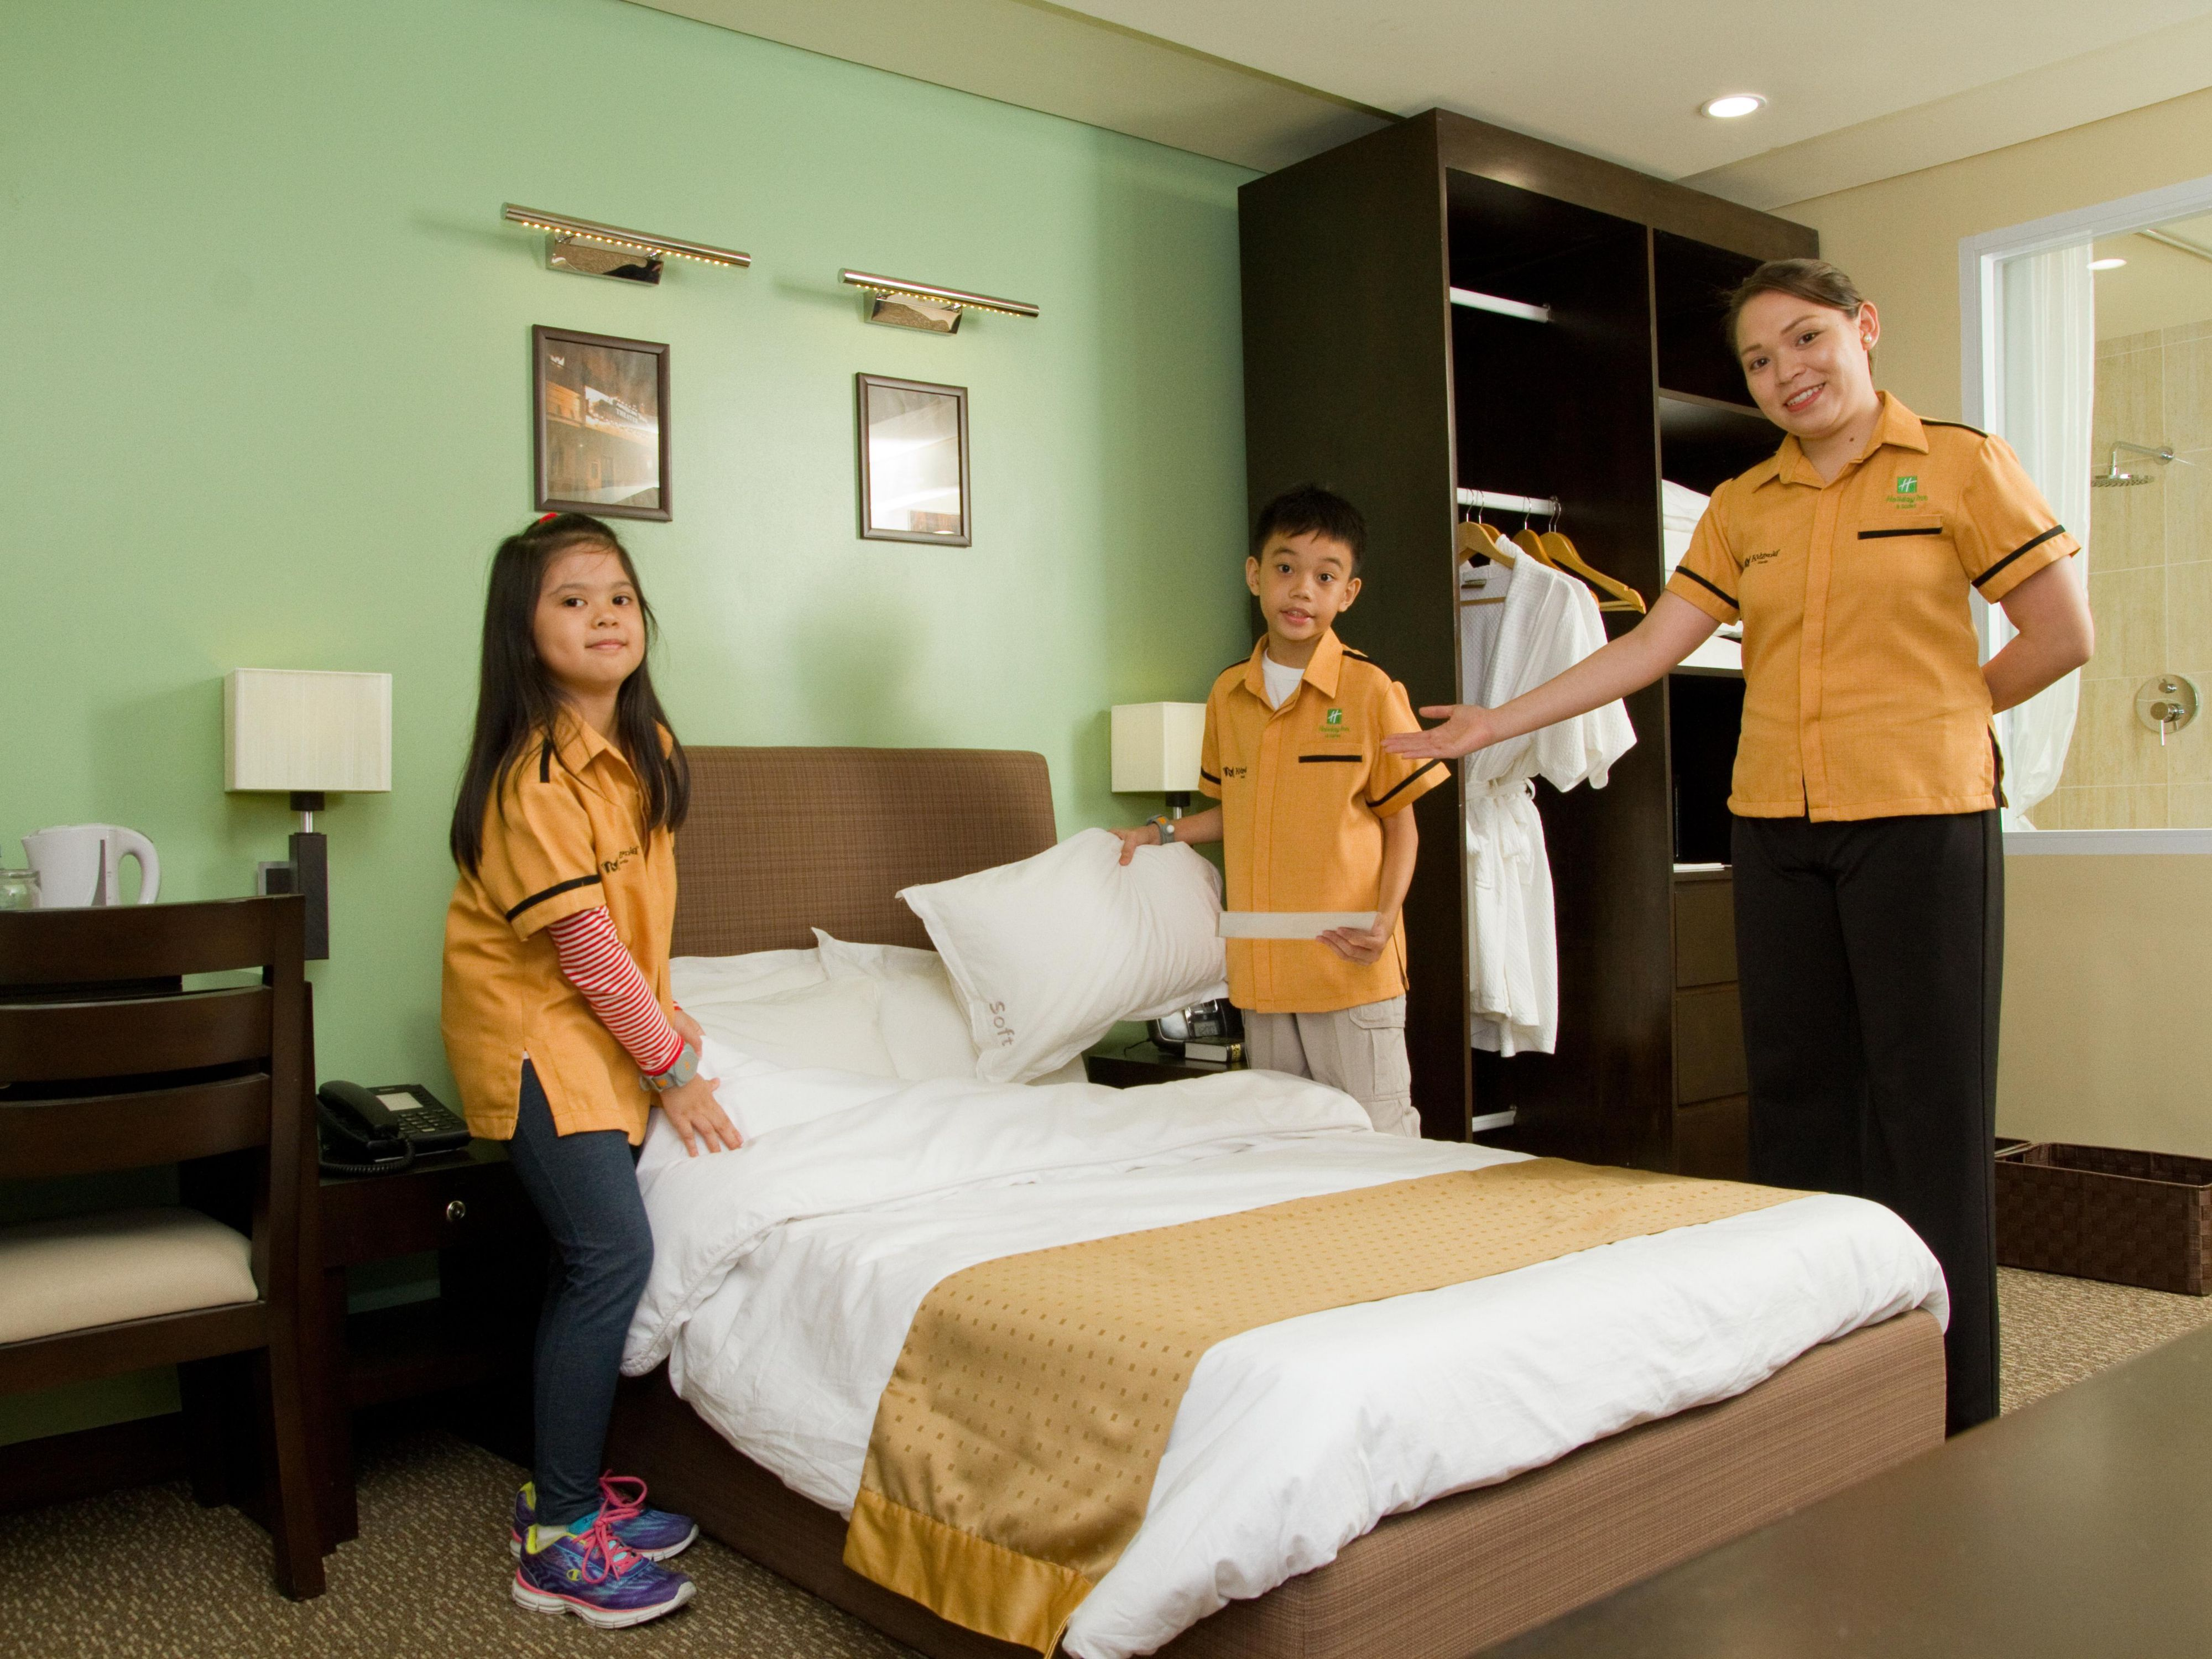 Kids will learn how to make a Holiday Inn bed at KidZania Manila